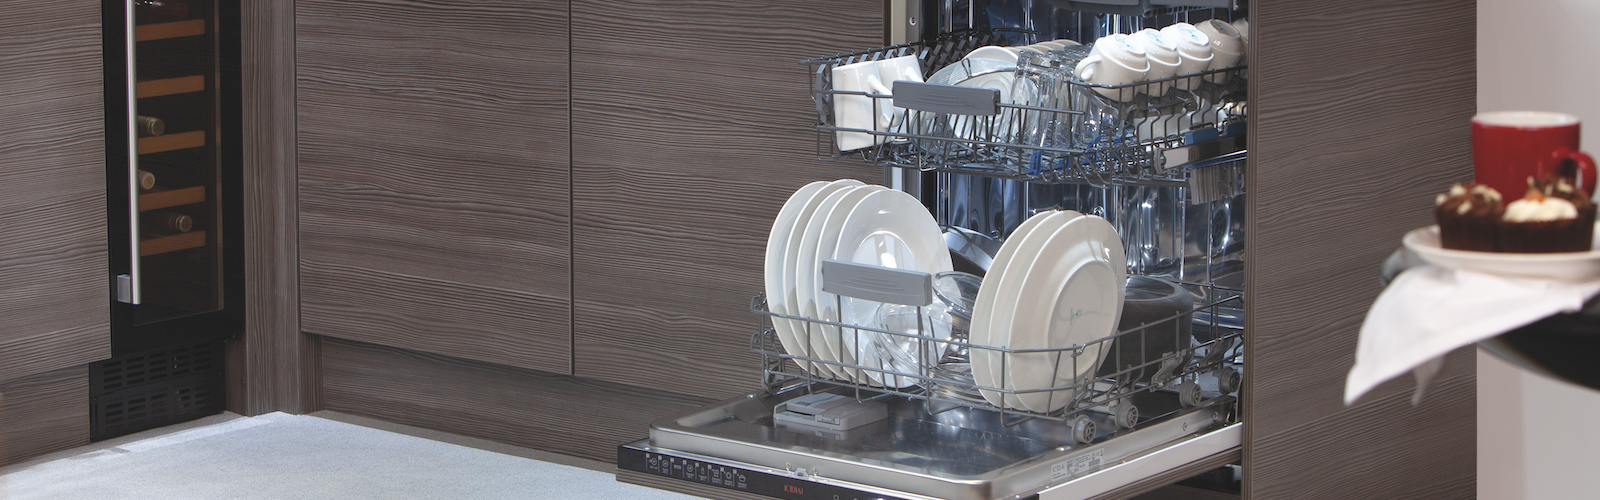 WC680 Integrated Dishwasher Review From Nailsea Electrical